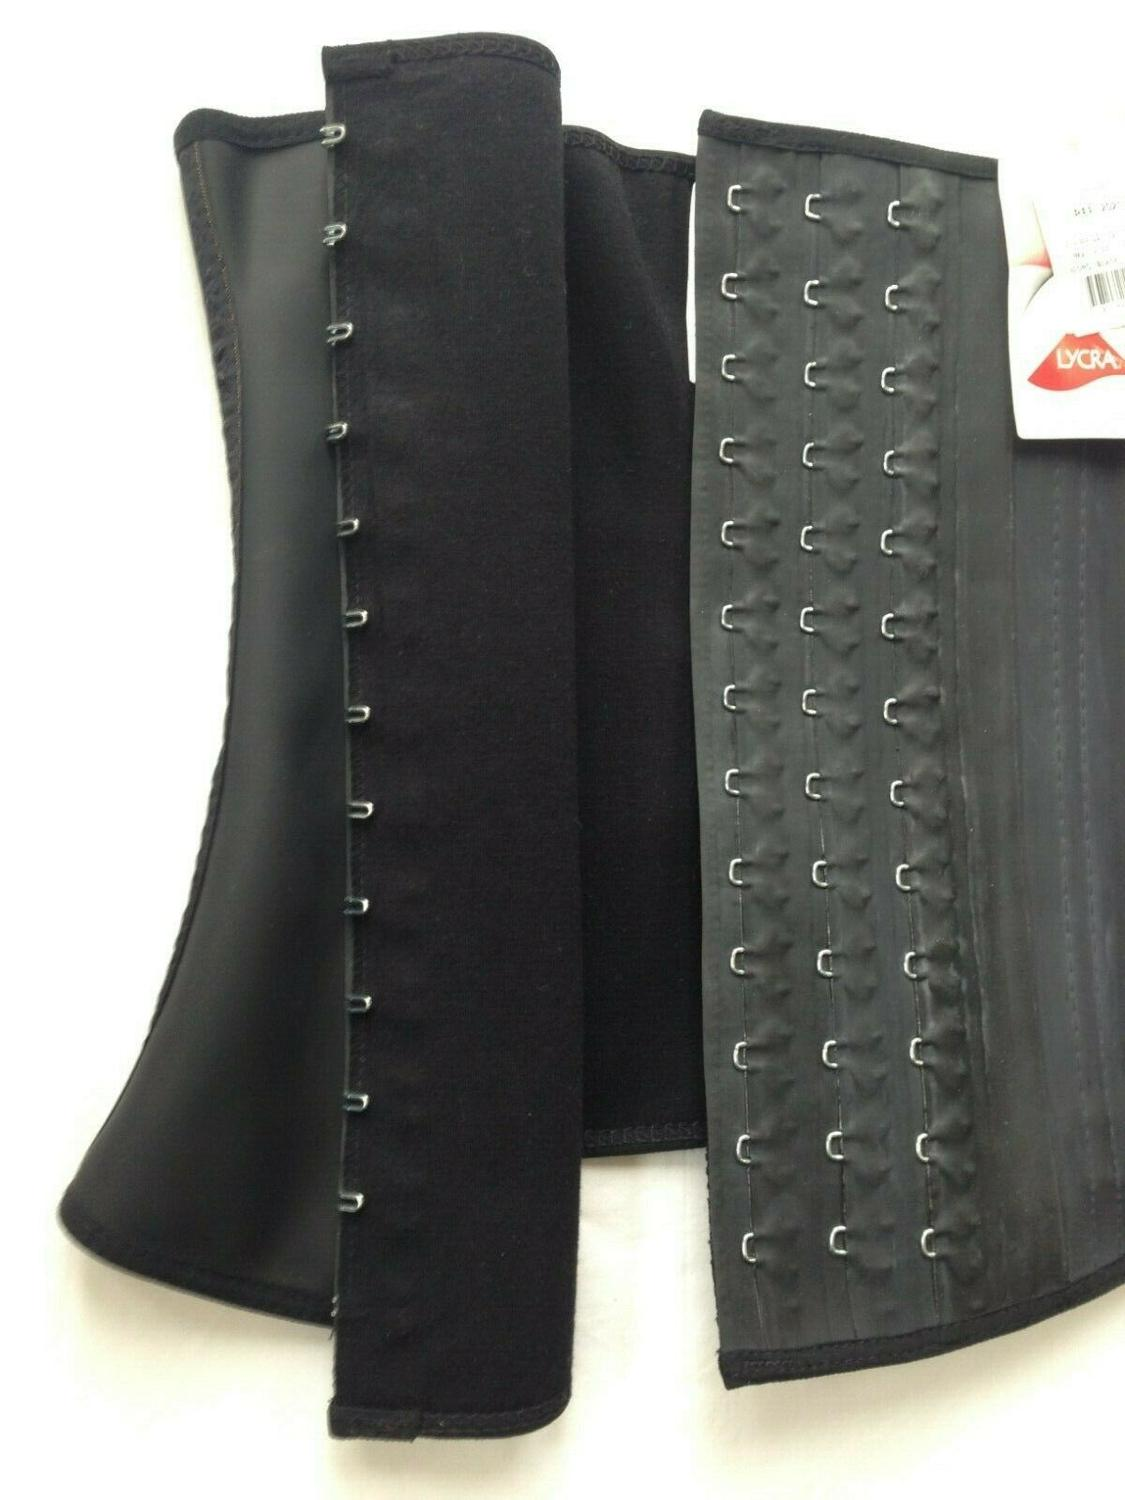 Chaud!! Ann Chery 2025 taille Shaper ~ Latex taille formation Corsets en gros ~ taille Shaper ~ taille formateur - 6